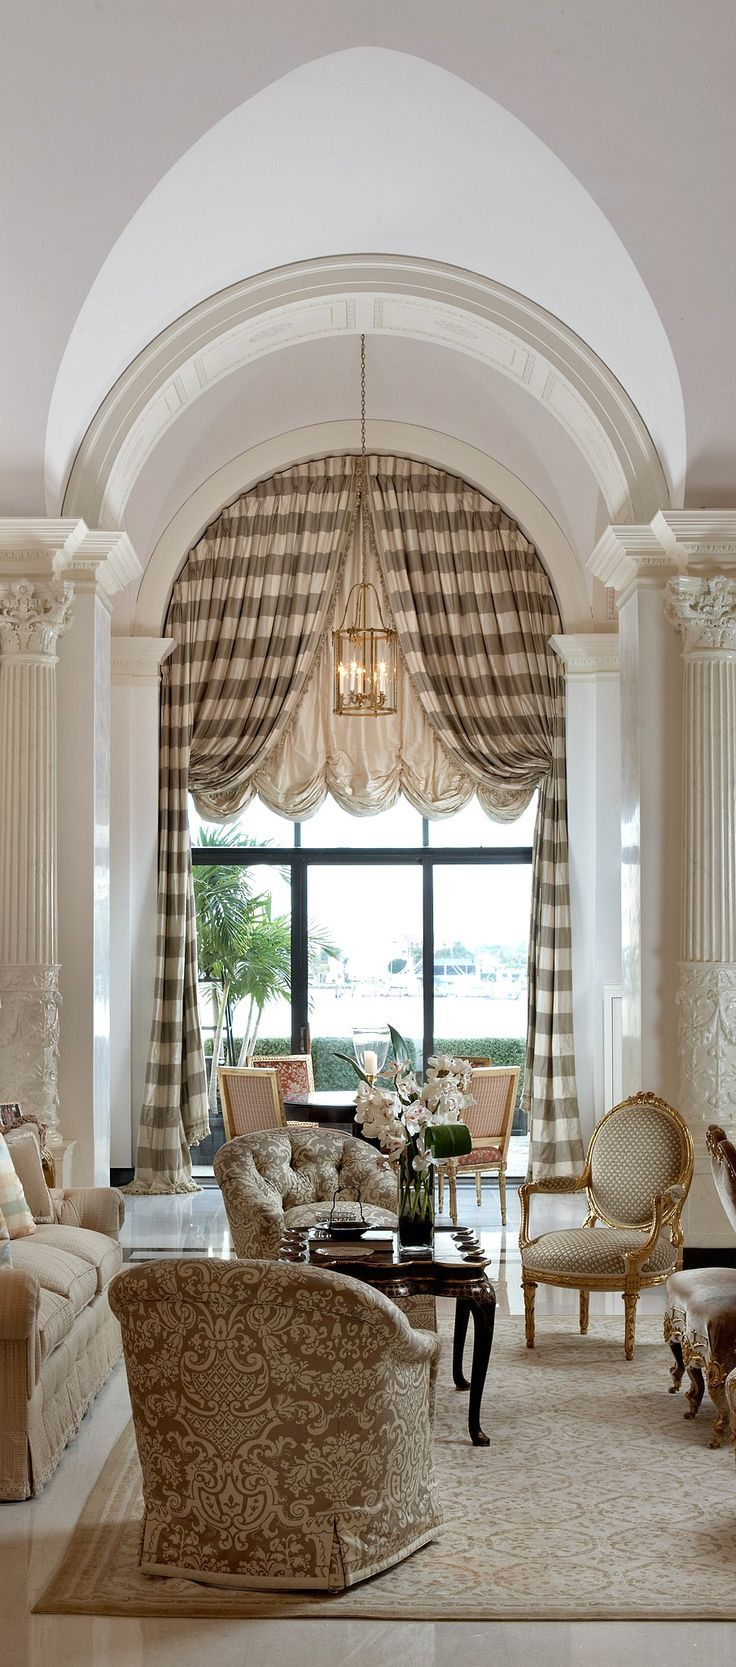 159 best two story window treatments images on pinterest for Hamptons style window treatments